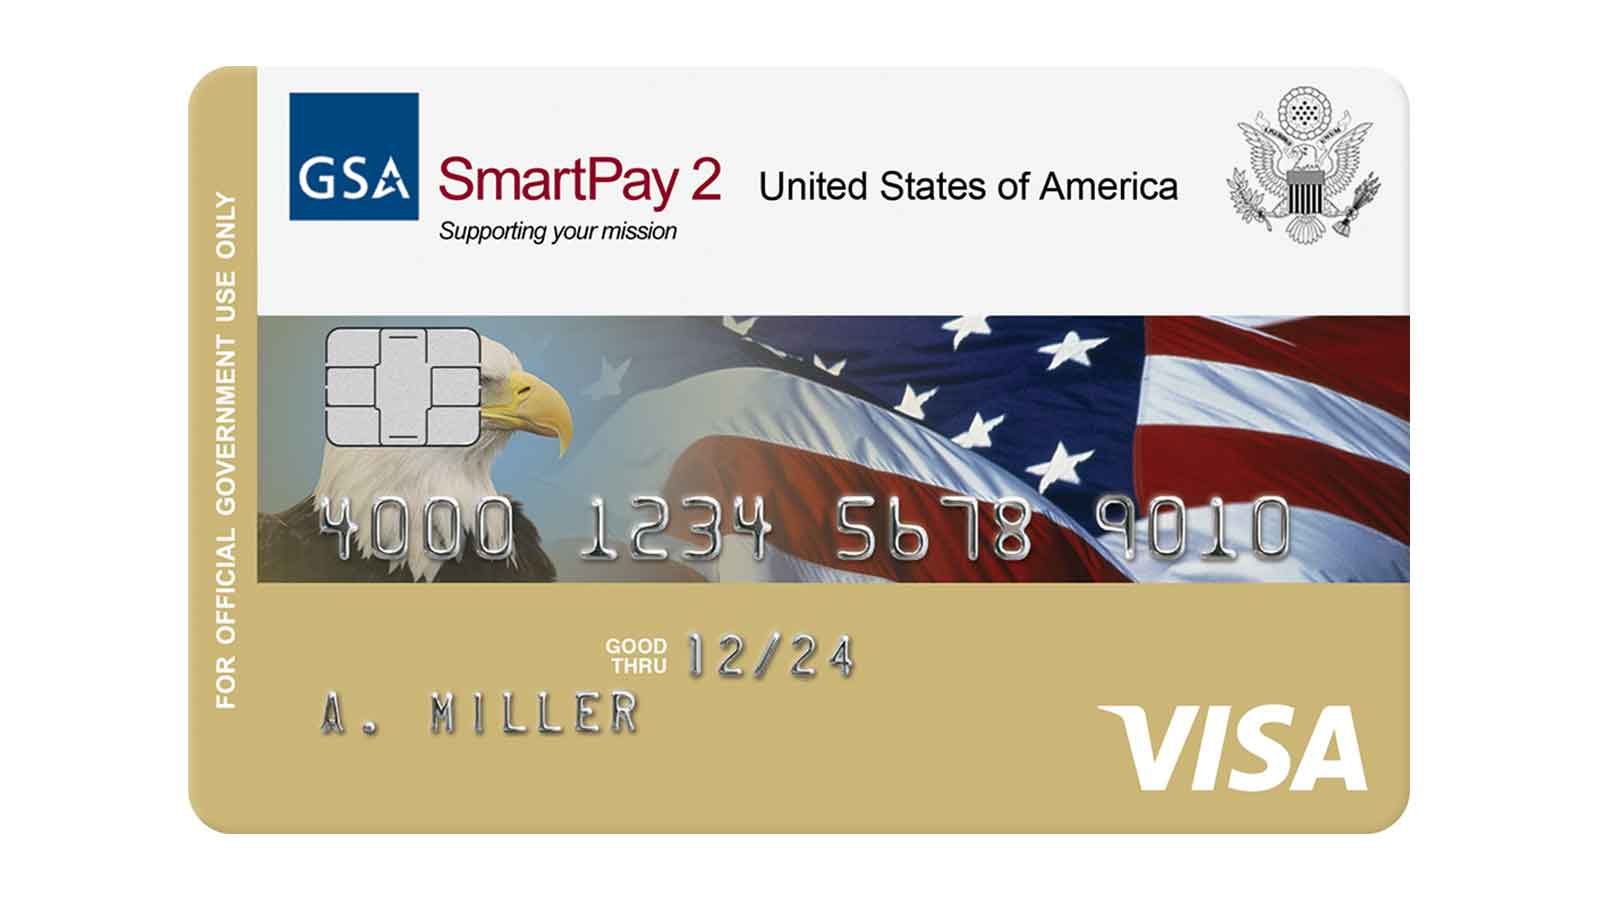 visa-integrated-1600x900